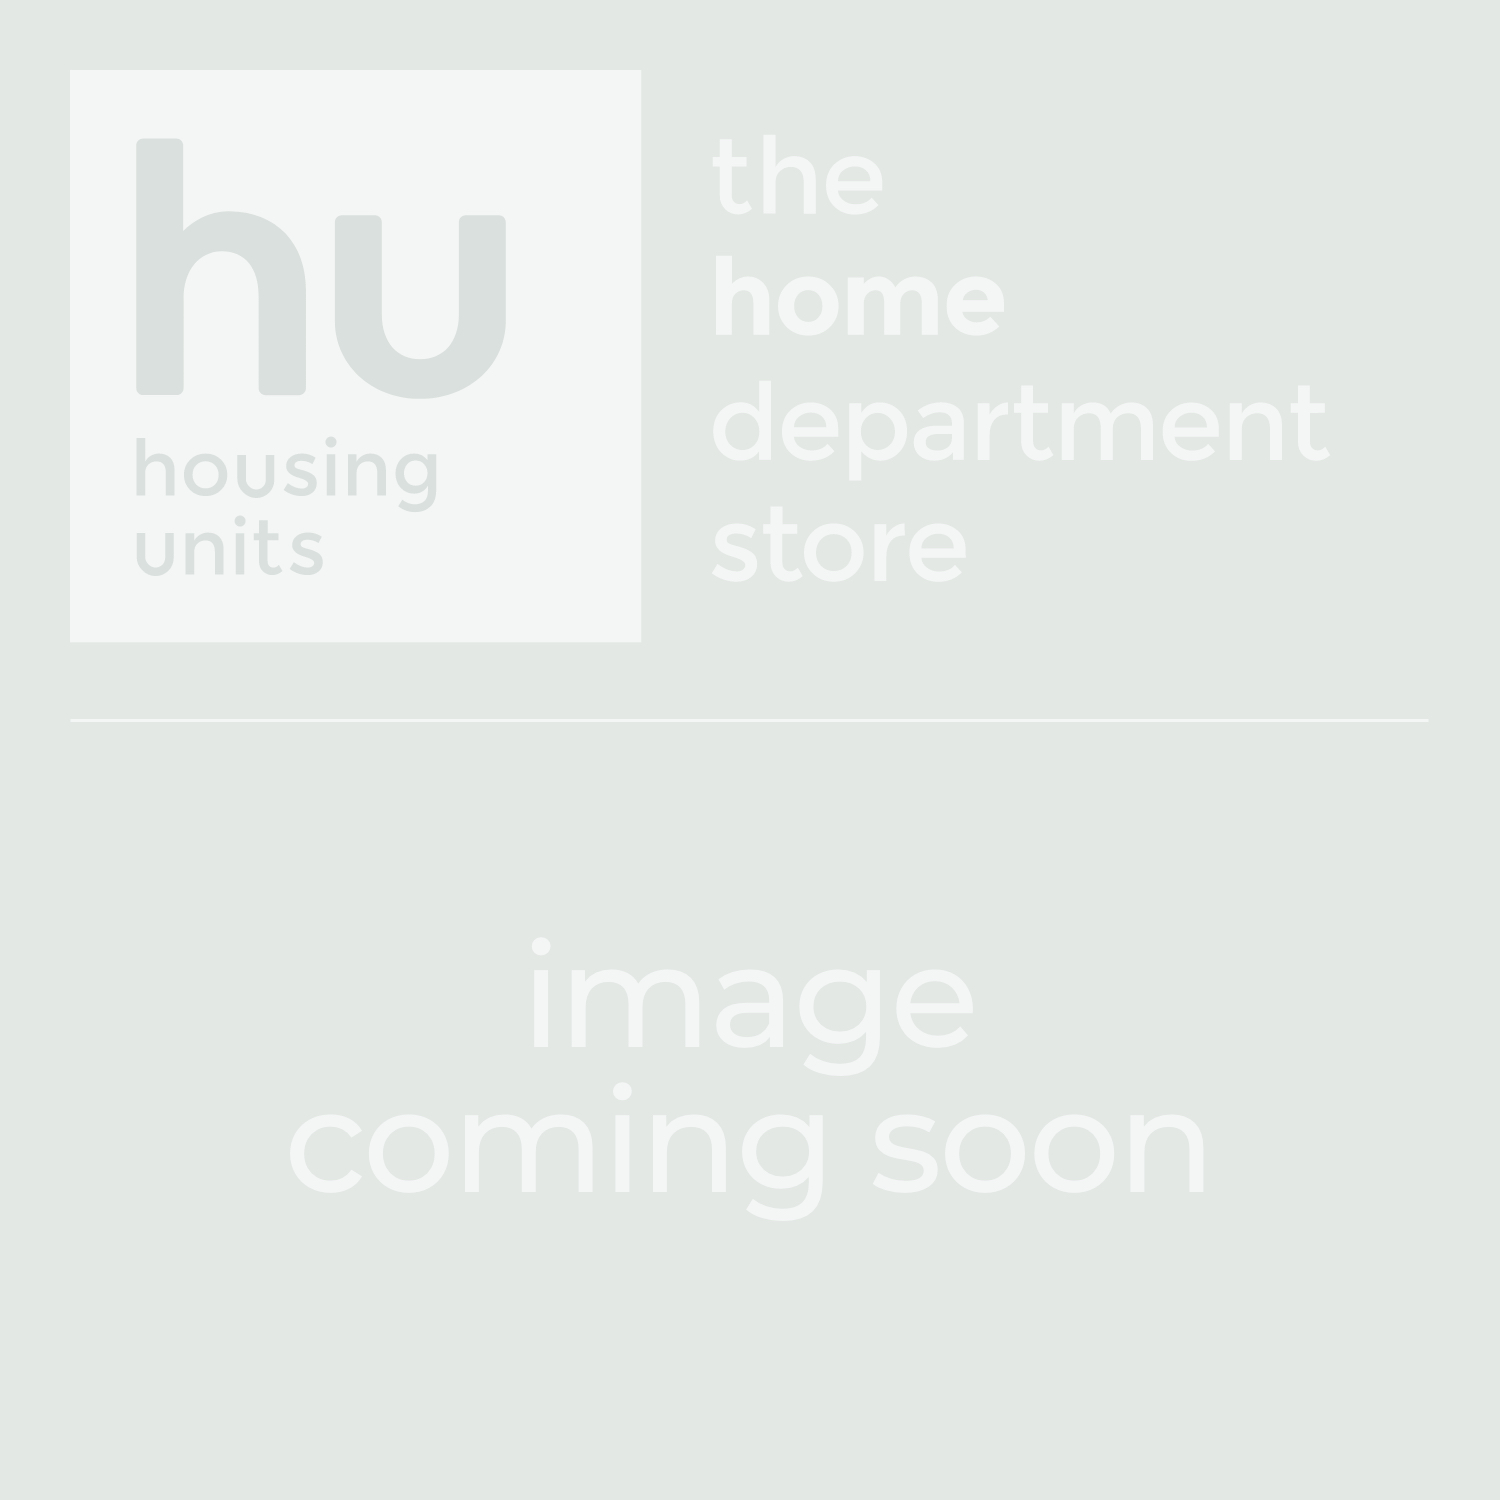 Celine Crystal & Chrome 4 Light Pendant | Housing Units